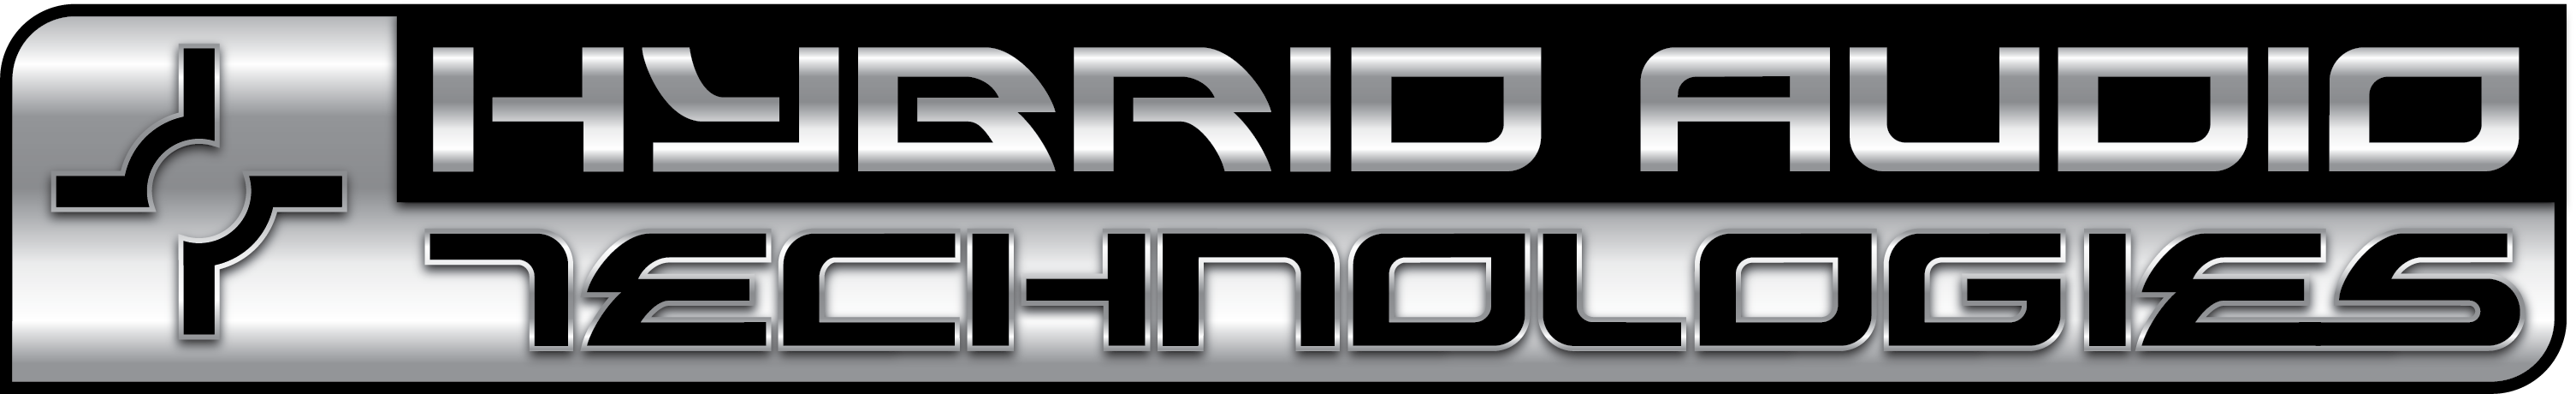 Hybrid Audio logo metallic